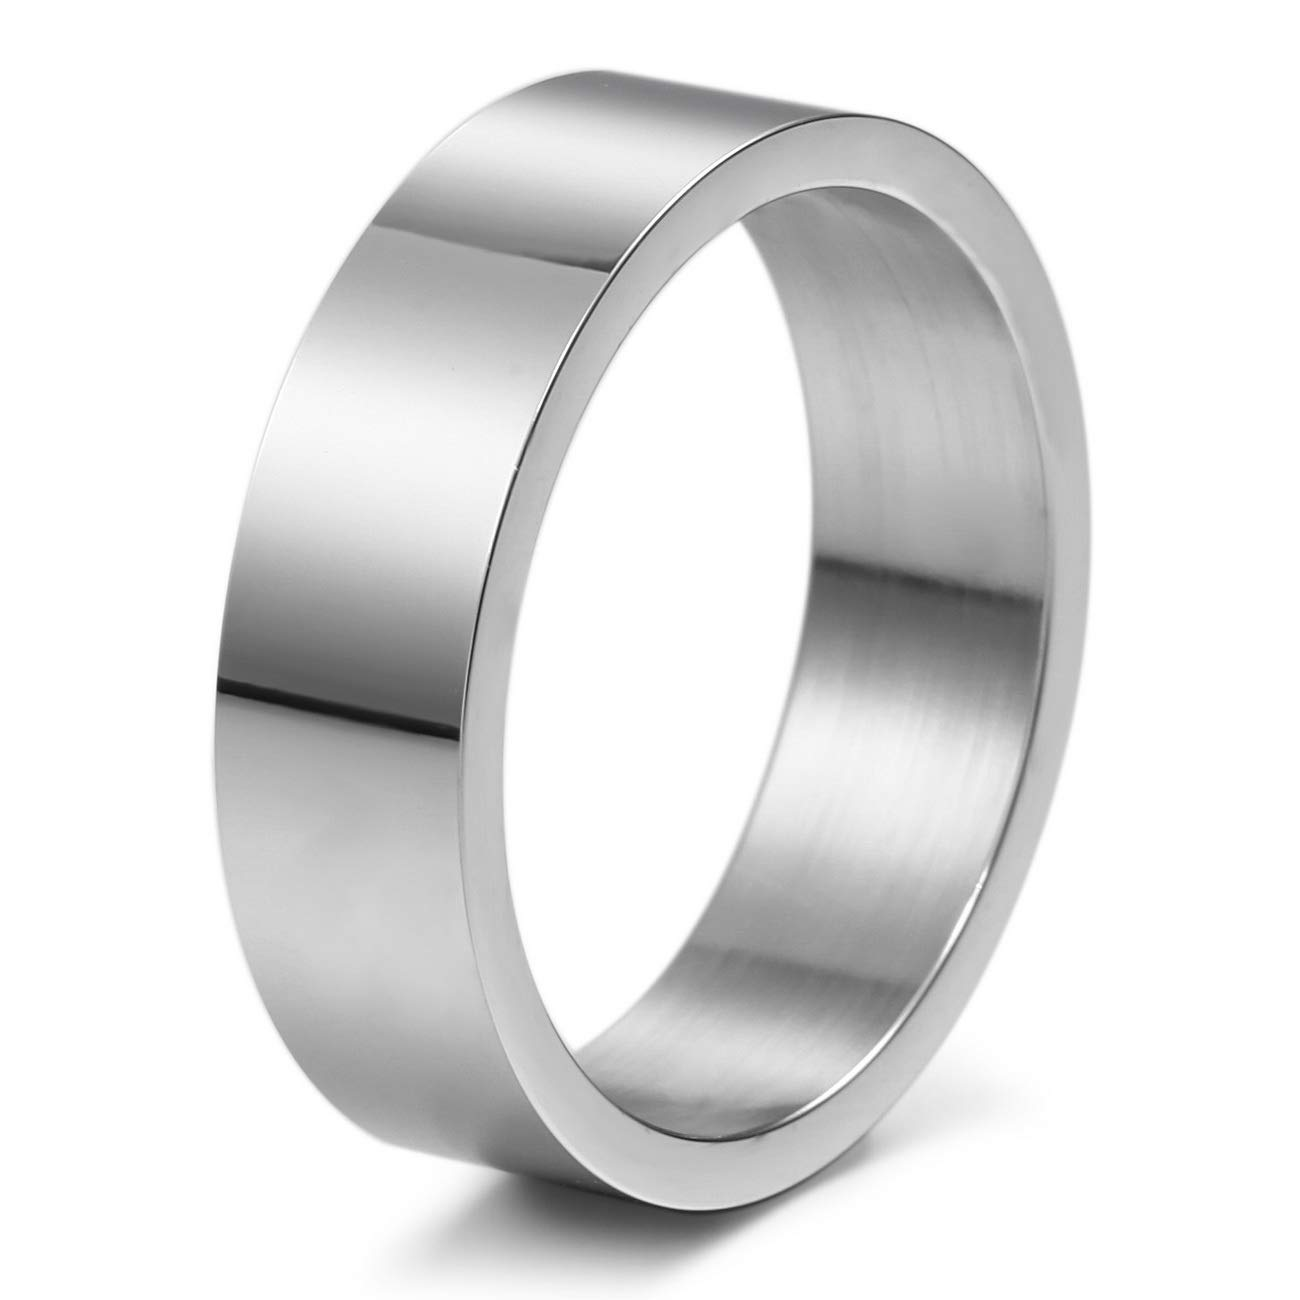 MeMeDIY 6mm Silver Tone Stainless Steel Ring Wedding Band Size 10 - Customized Engraving by MeMeDIY (Image #5)